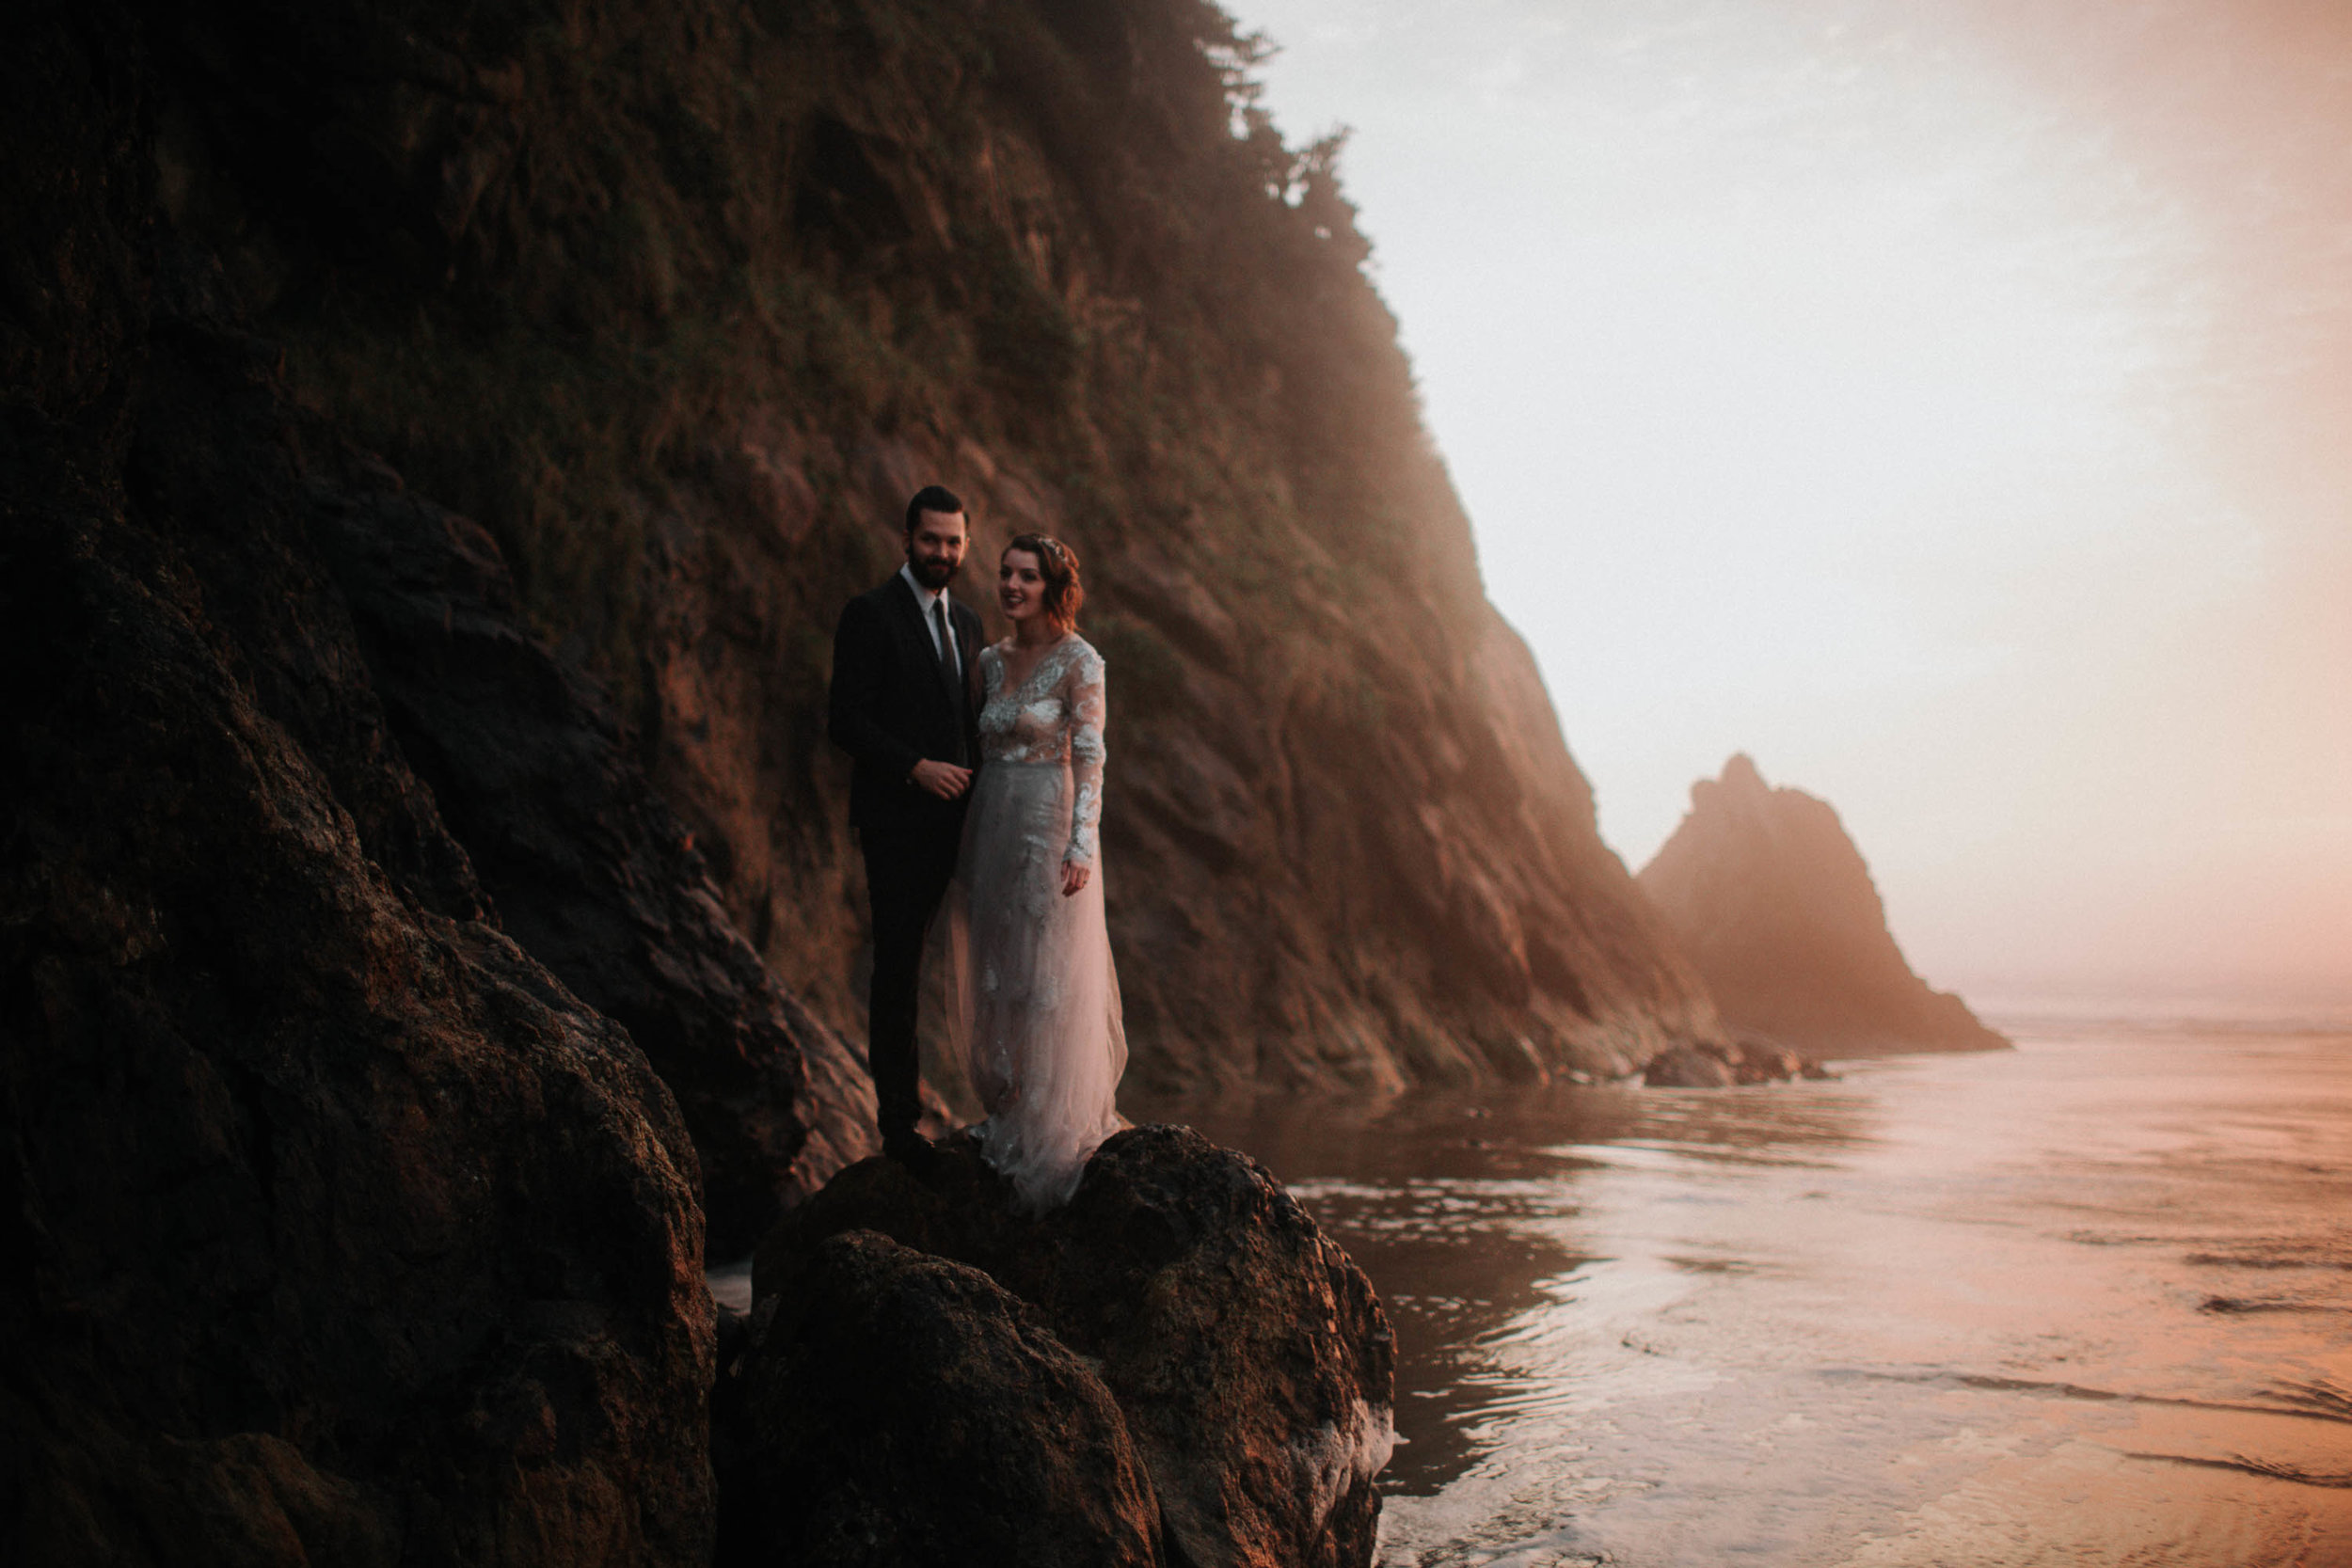 canonbeach_elopment_weddingphotographer-121.jpg